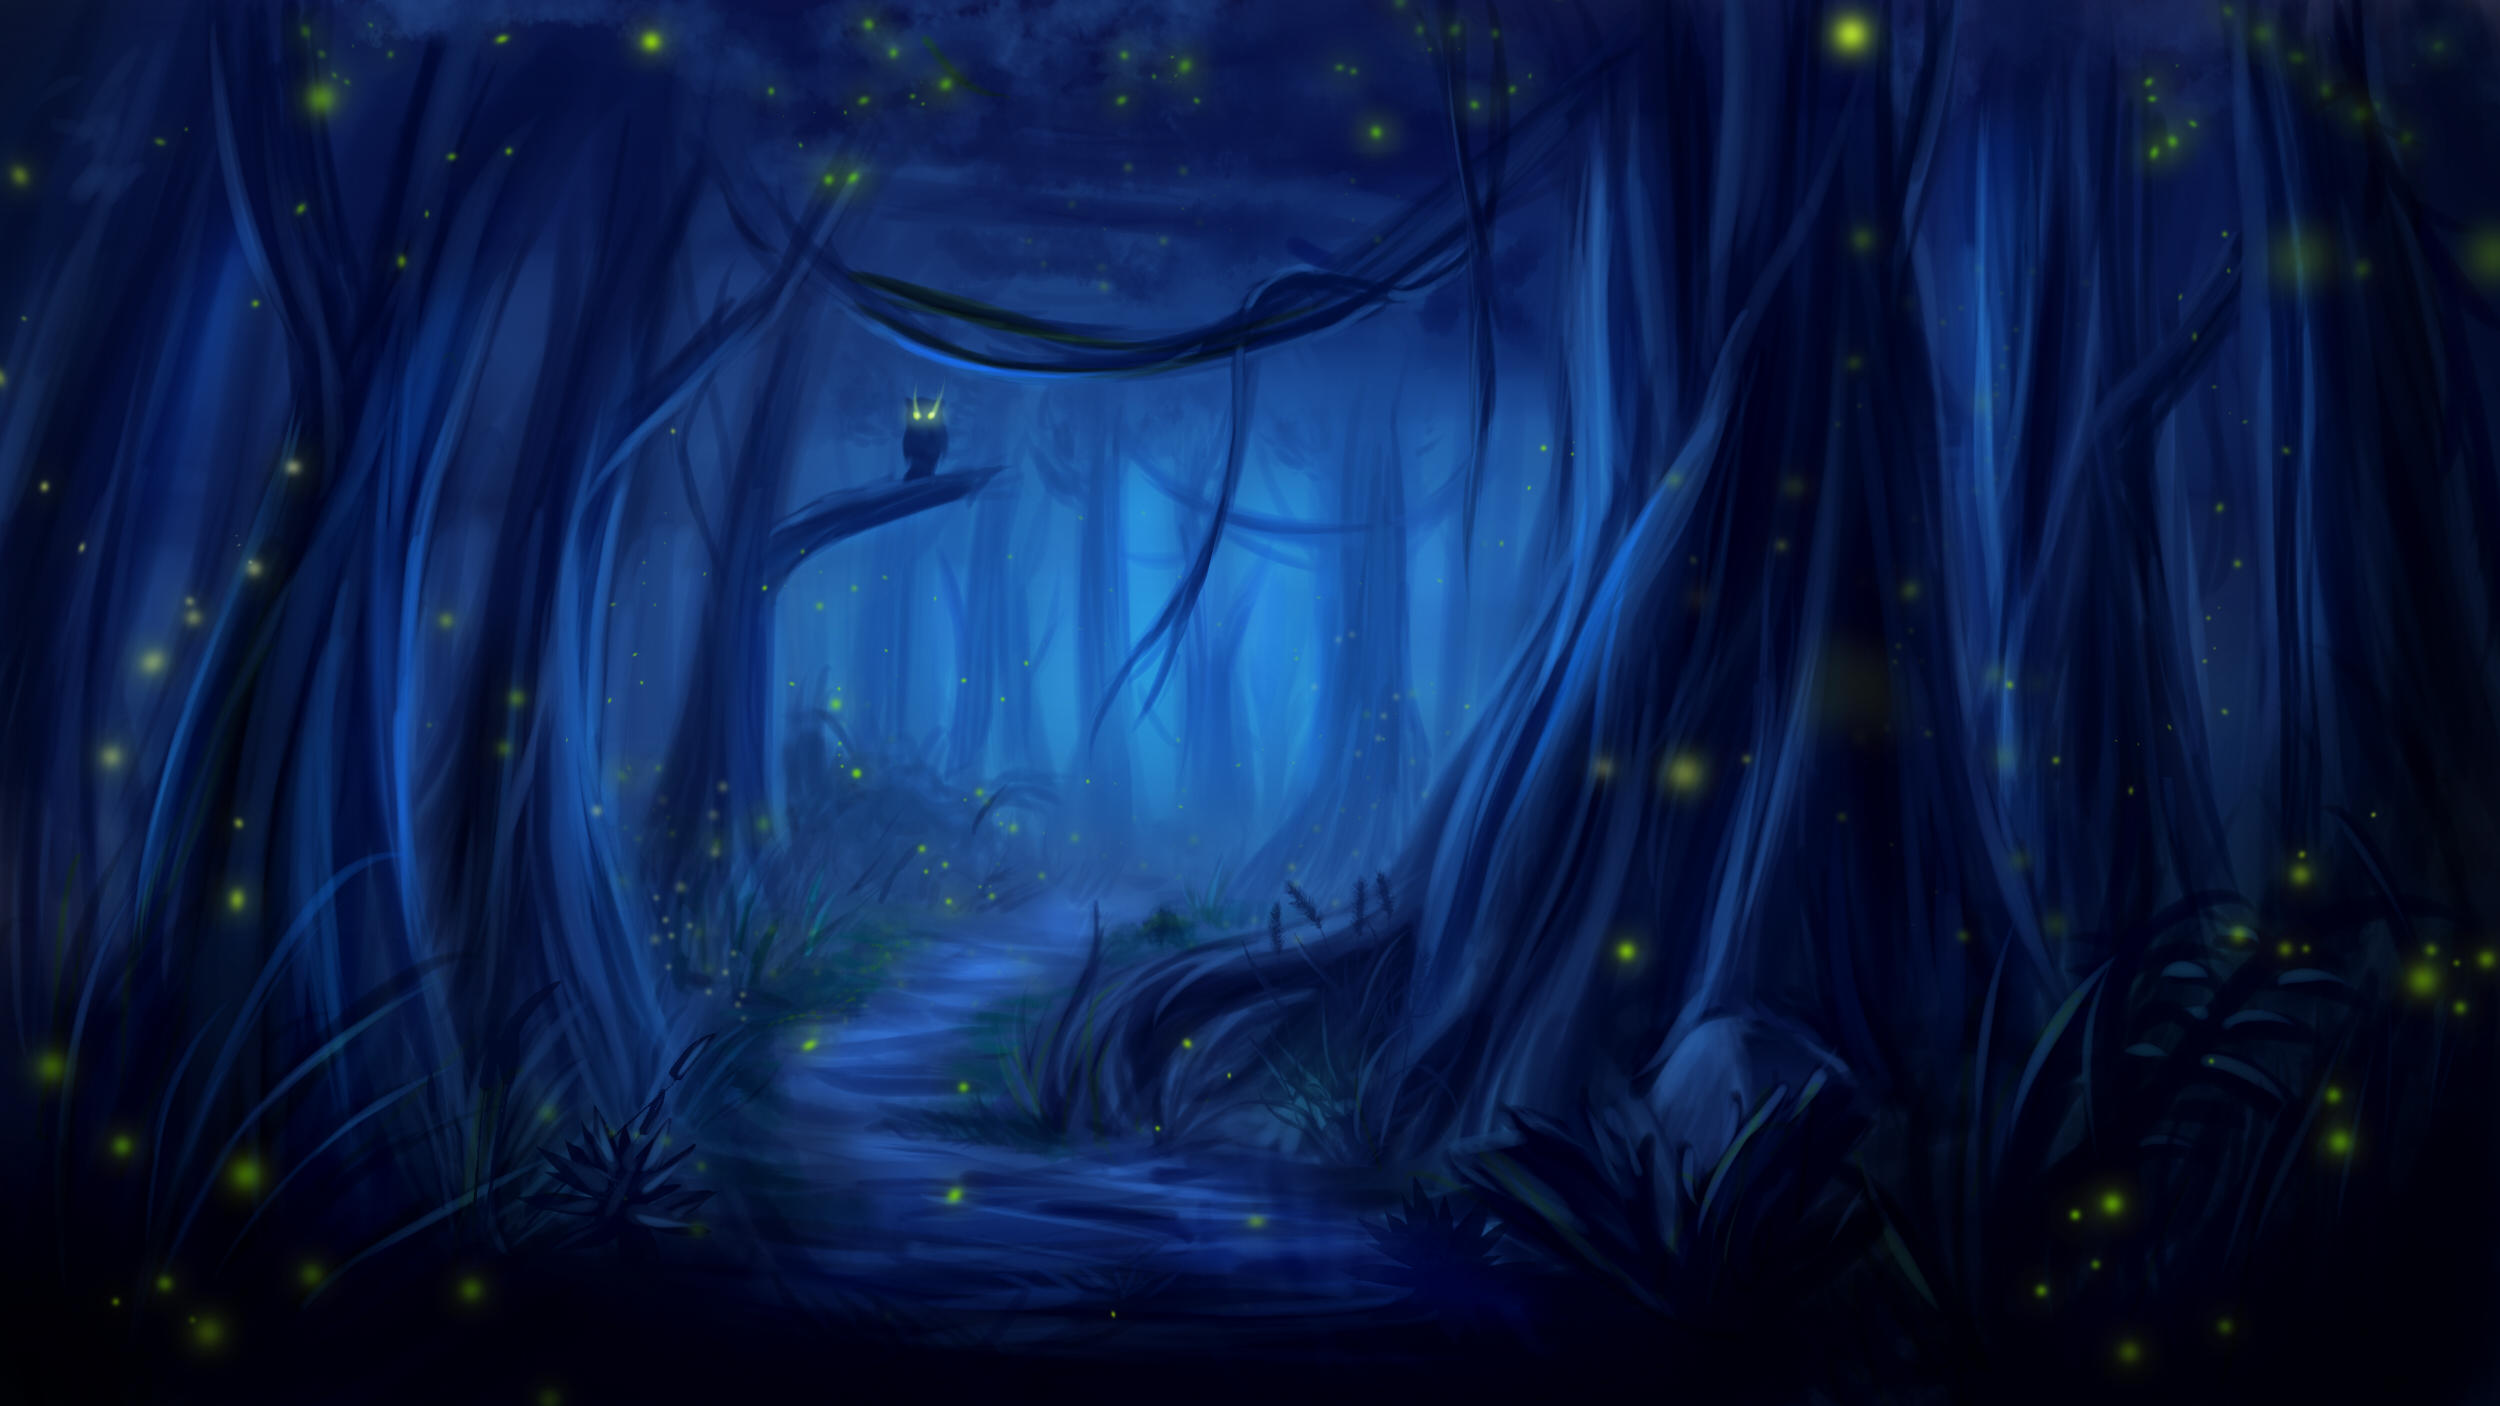 Owl Forest Fantasy Dreamy Hd Artist 4k Wallpapers Images Backgrounds Photos And Pictures